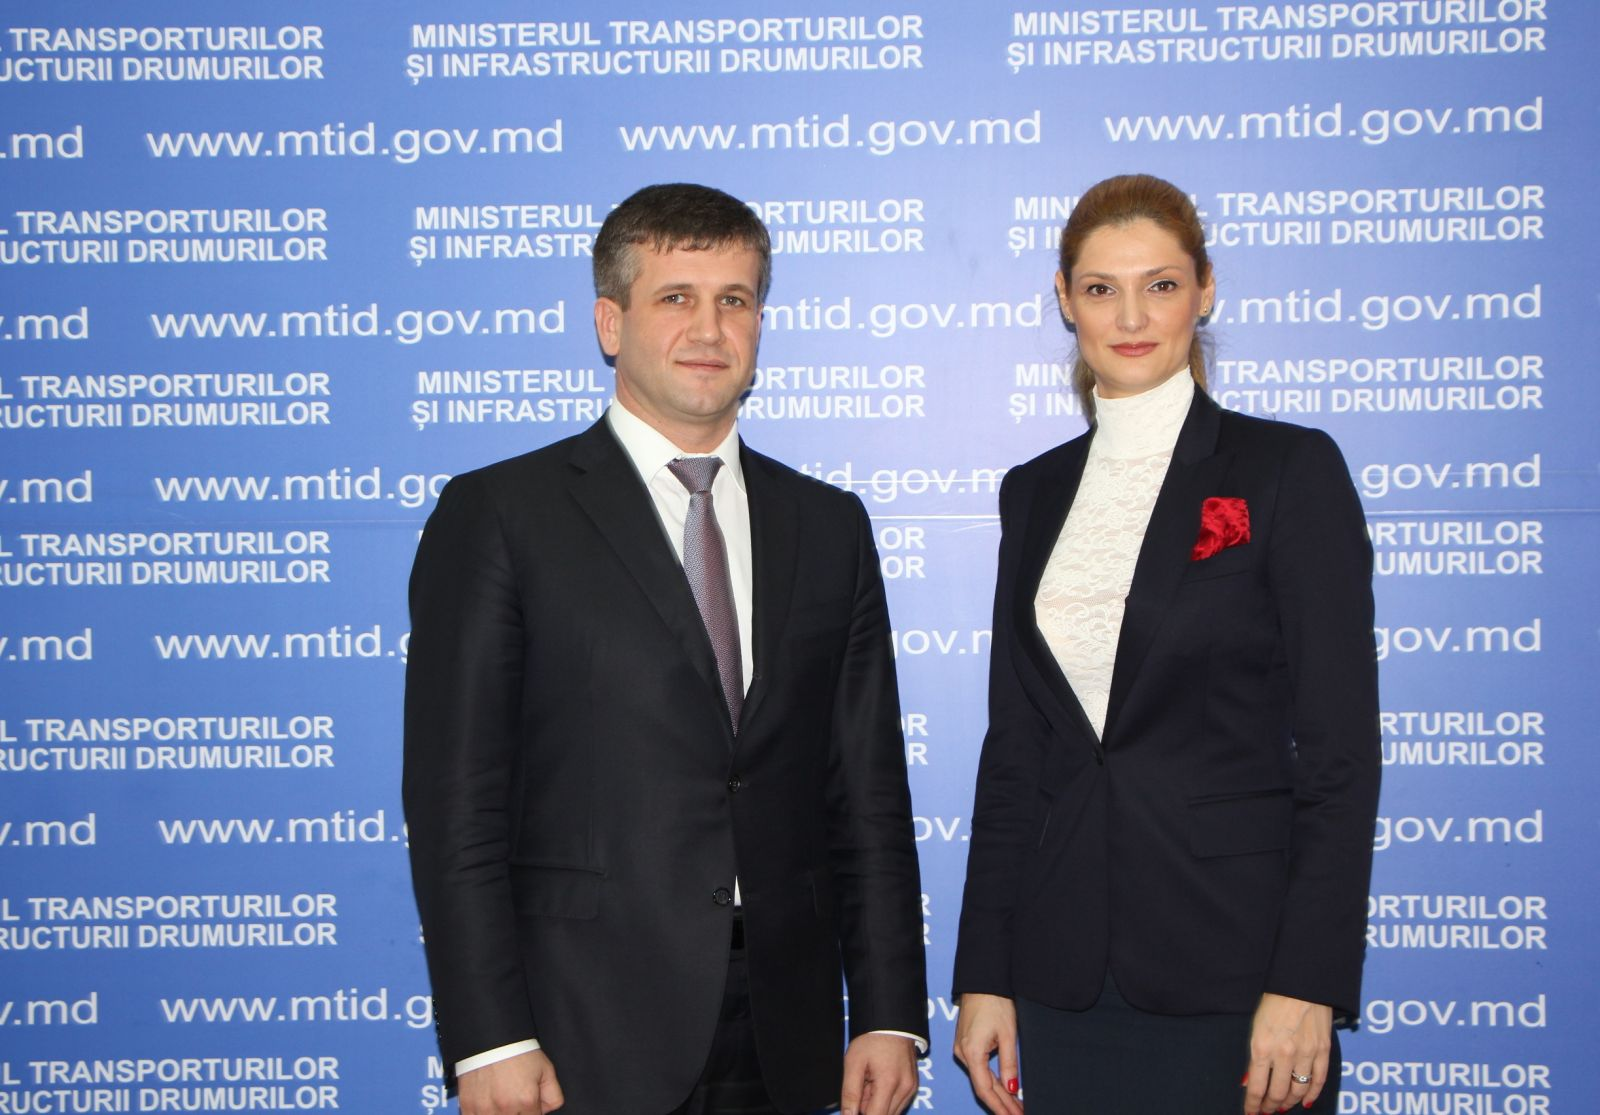 Romania, Moldova set up joint group to draw investments in transport